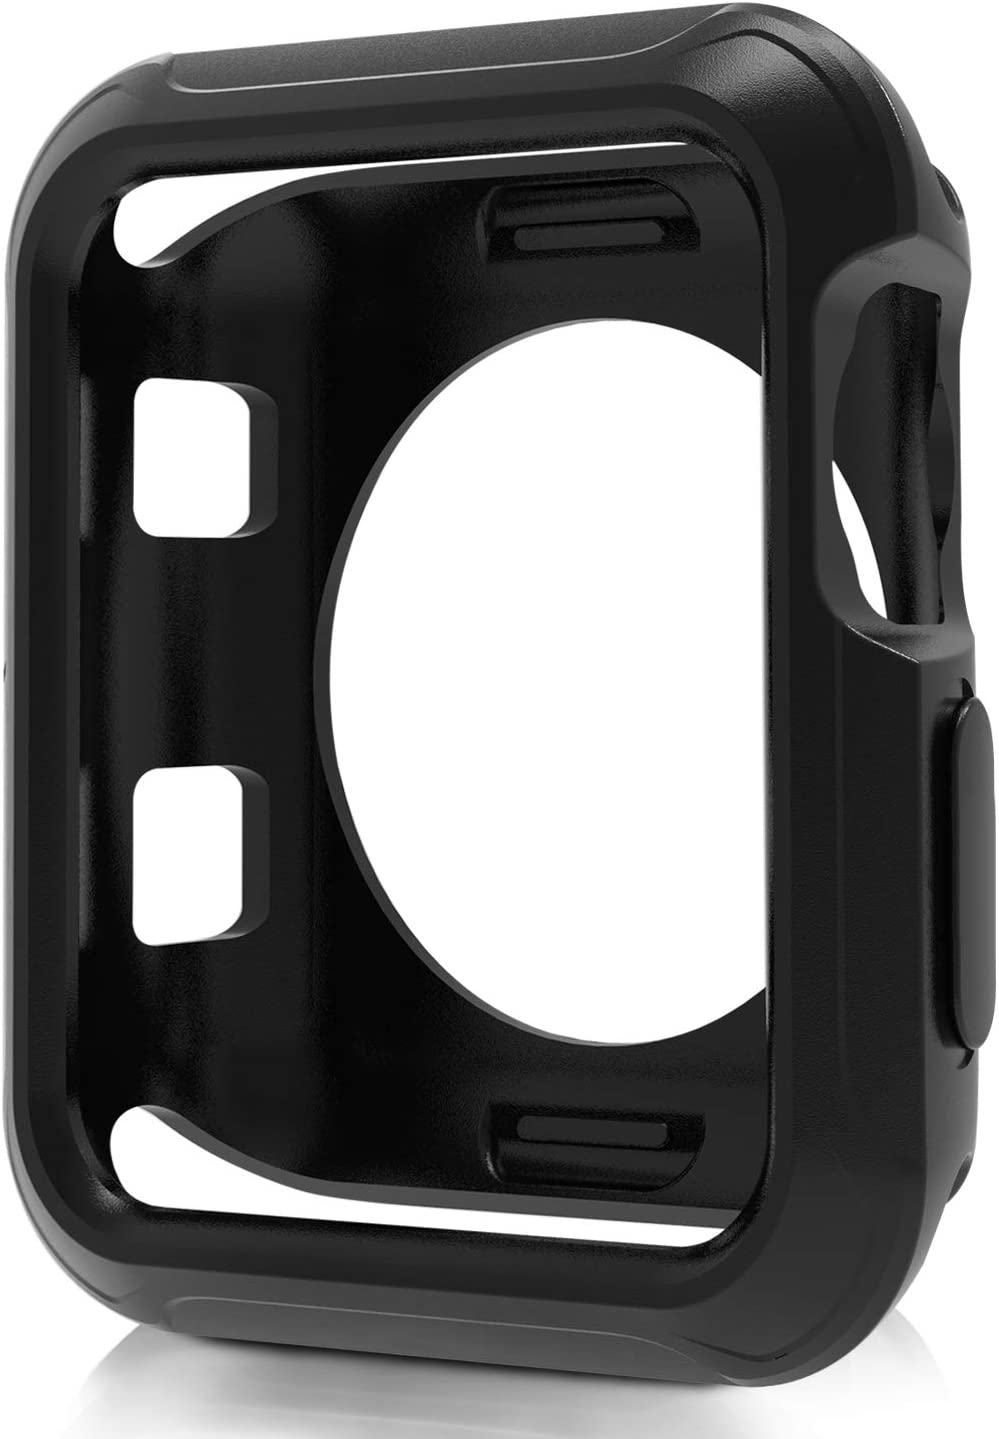 JuziTech Compatible Apple Watch Case 38mm,Shock-Proof and Shatter-Resistant Protector Bumper iwatch Case Compatible Apple Watch Series 3/2/1,Nike+,Sport,Edition (Black, 38mm)